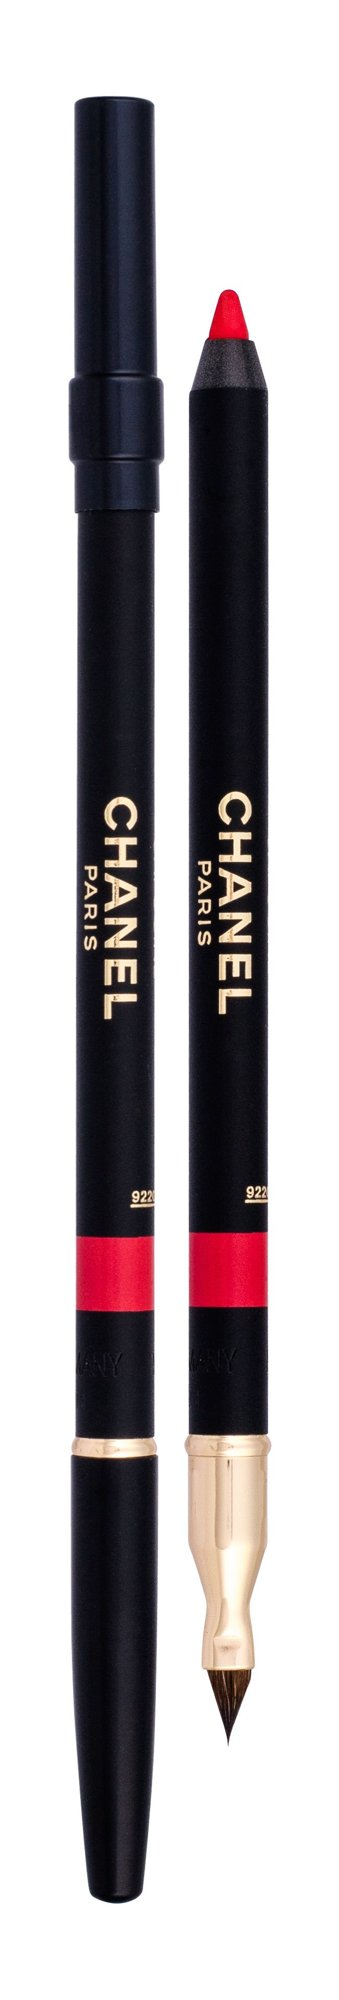 Chanel Le Crayon Levres Lip Pencil 1ml 92 Capucine